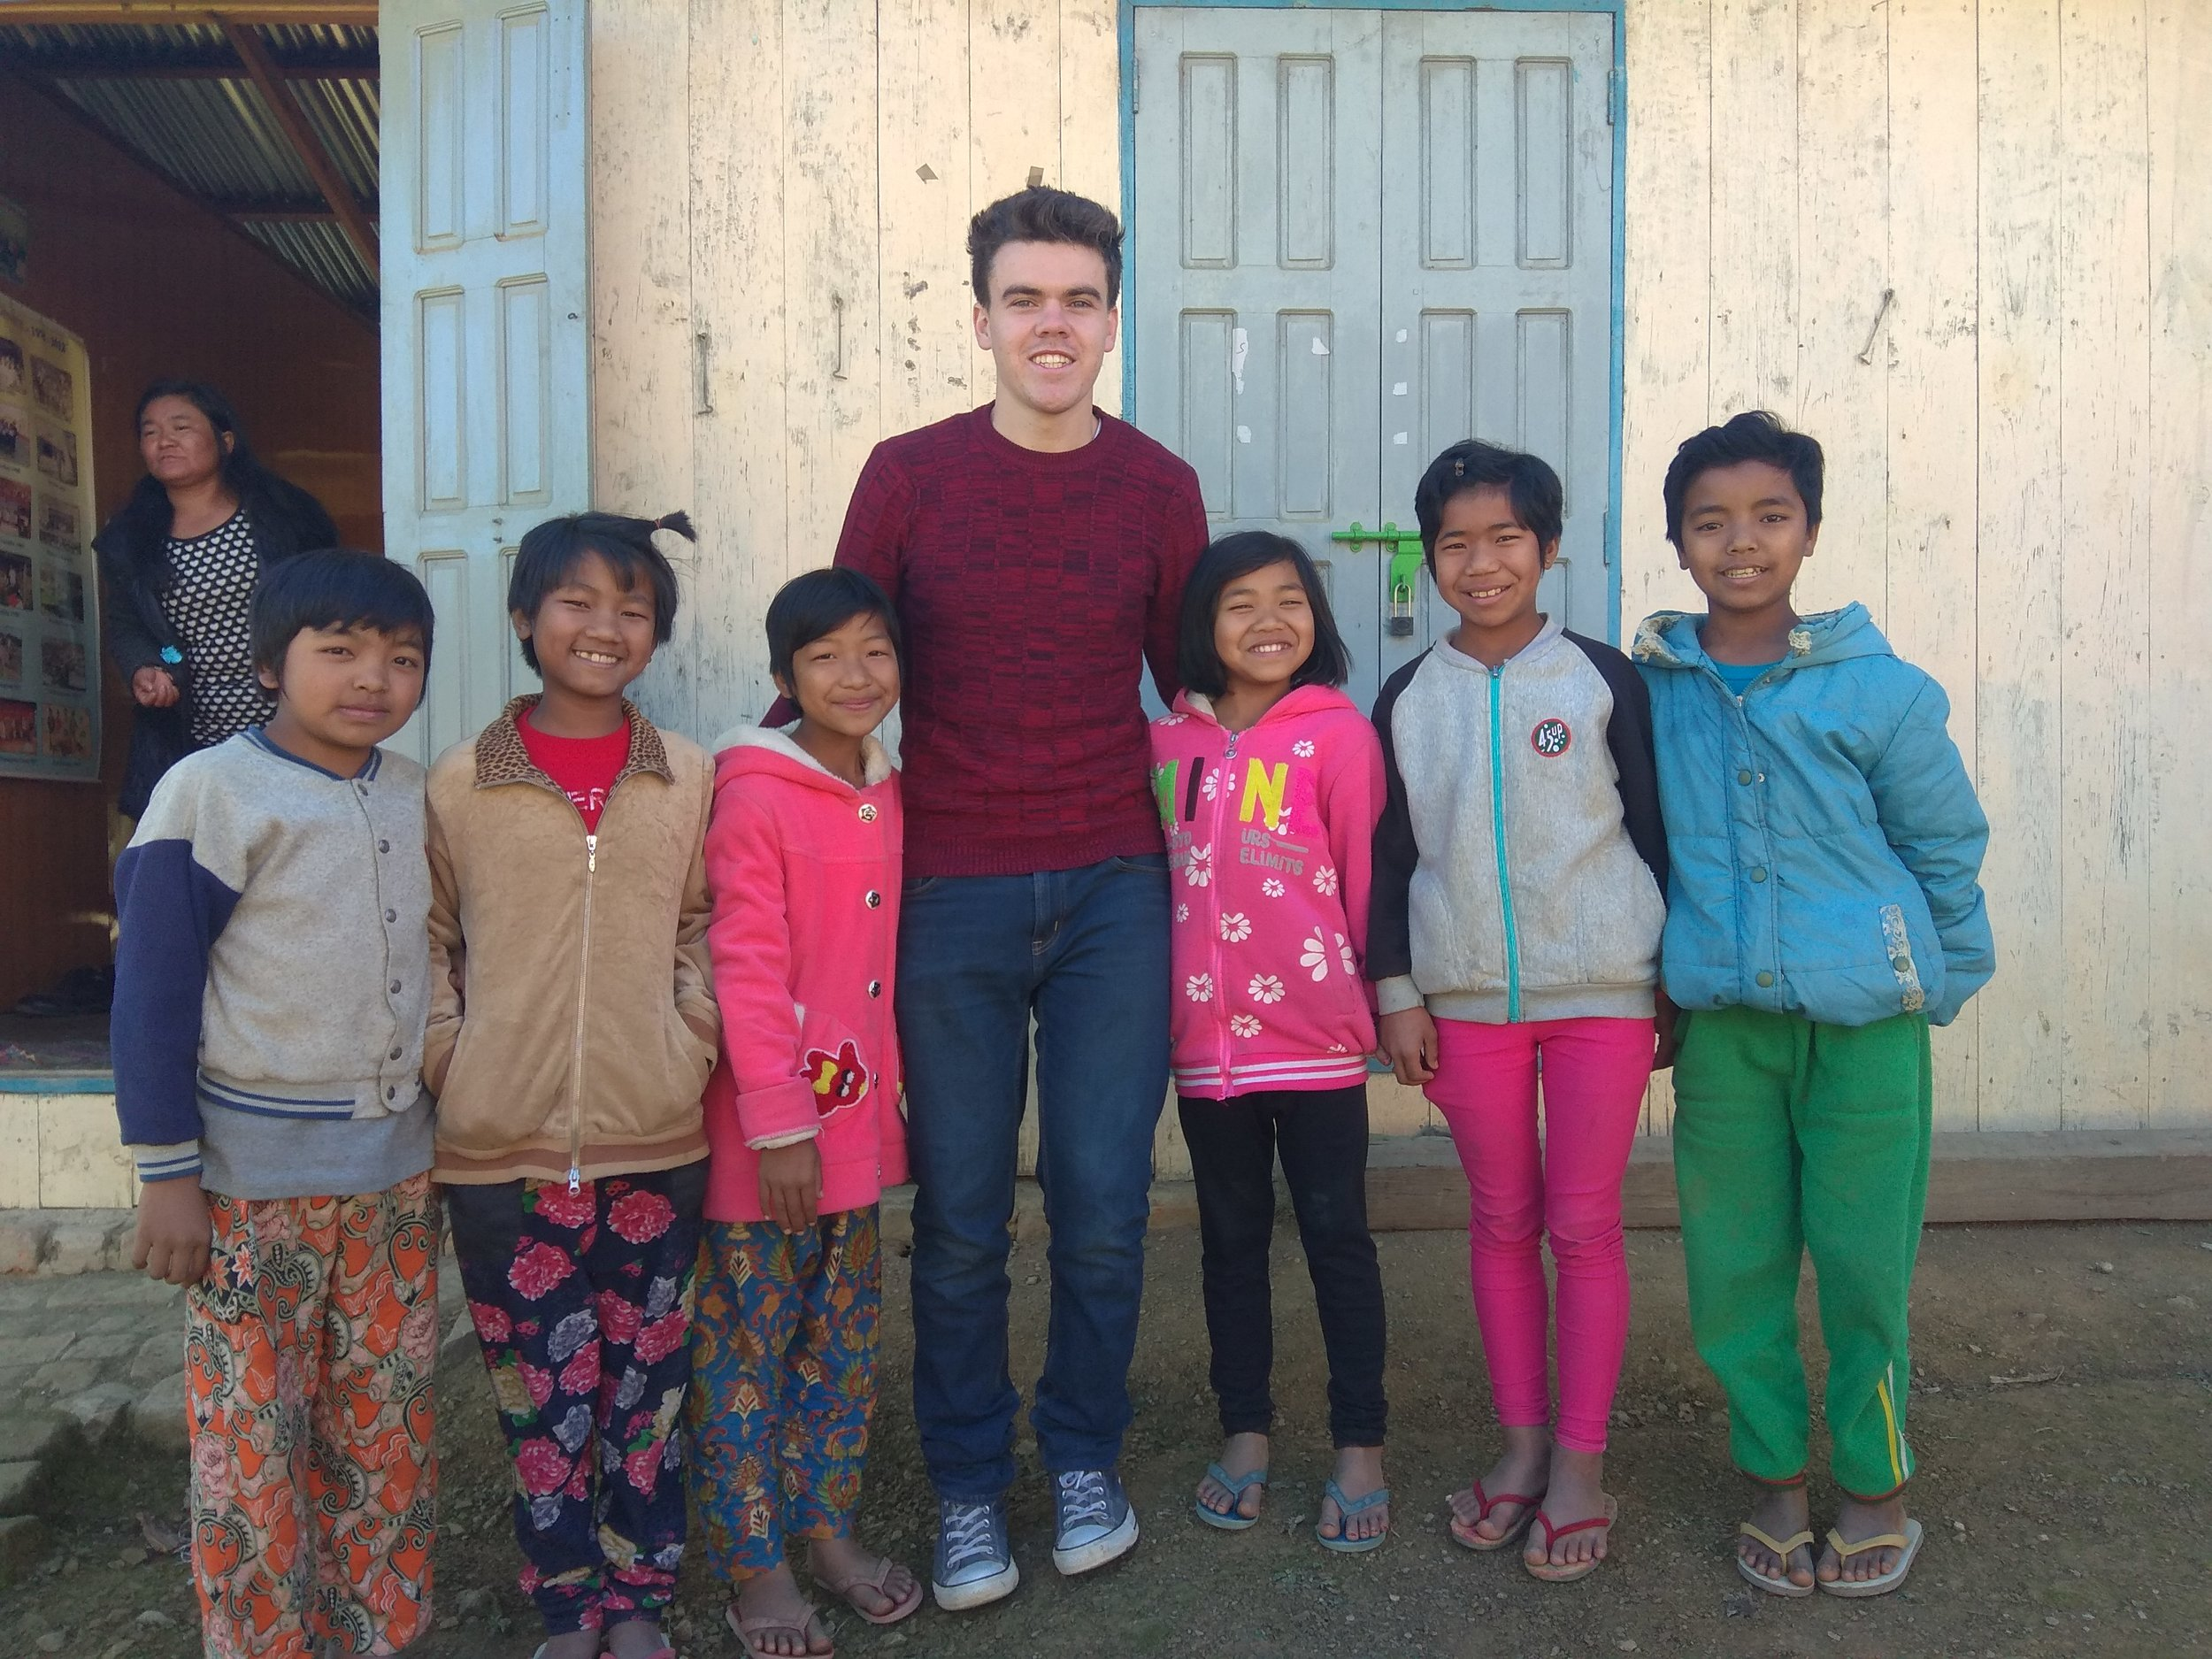 One of our missionaries that we support